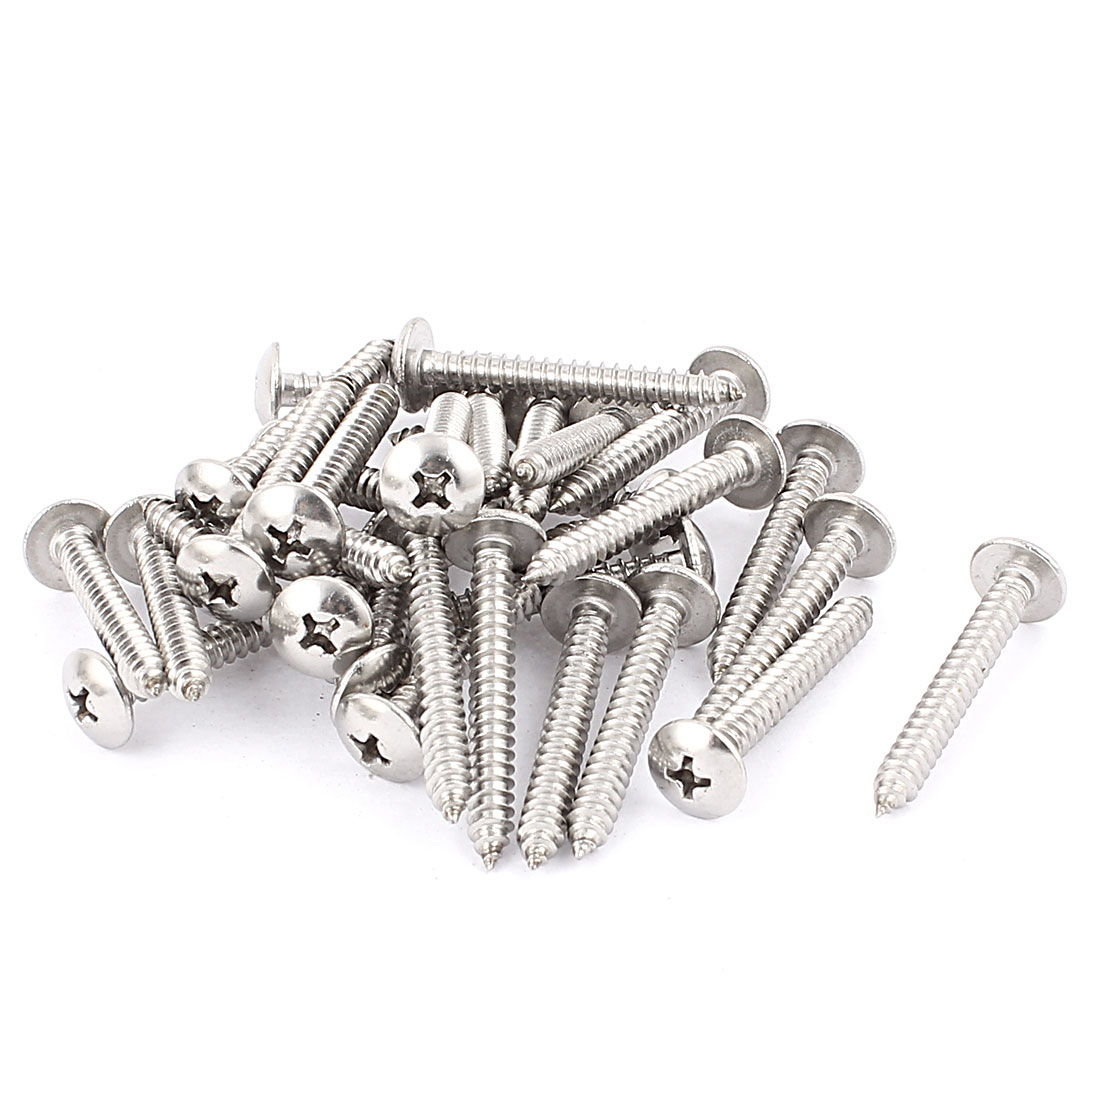 4.8mm x 40mm Stainless Steel Phillips Truss Head Self Tapping Screw Fasteners Silver Tone 30 Pcs